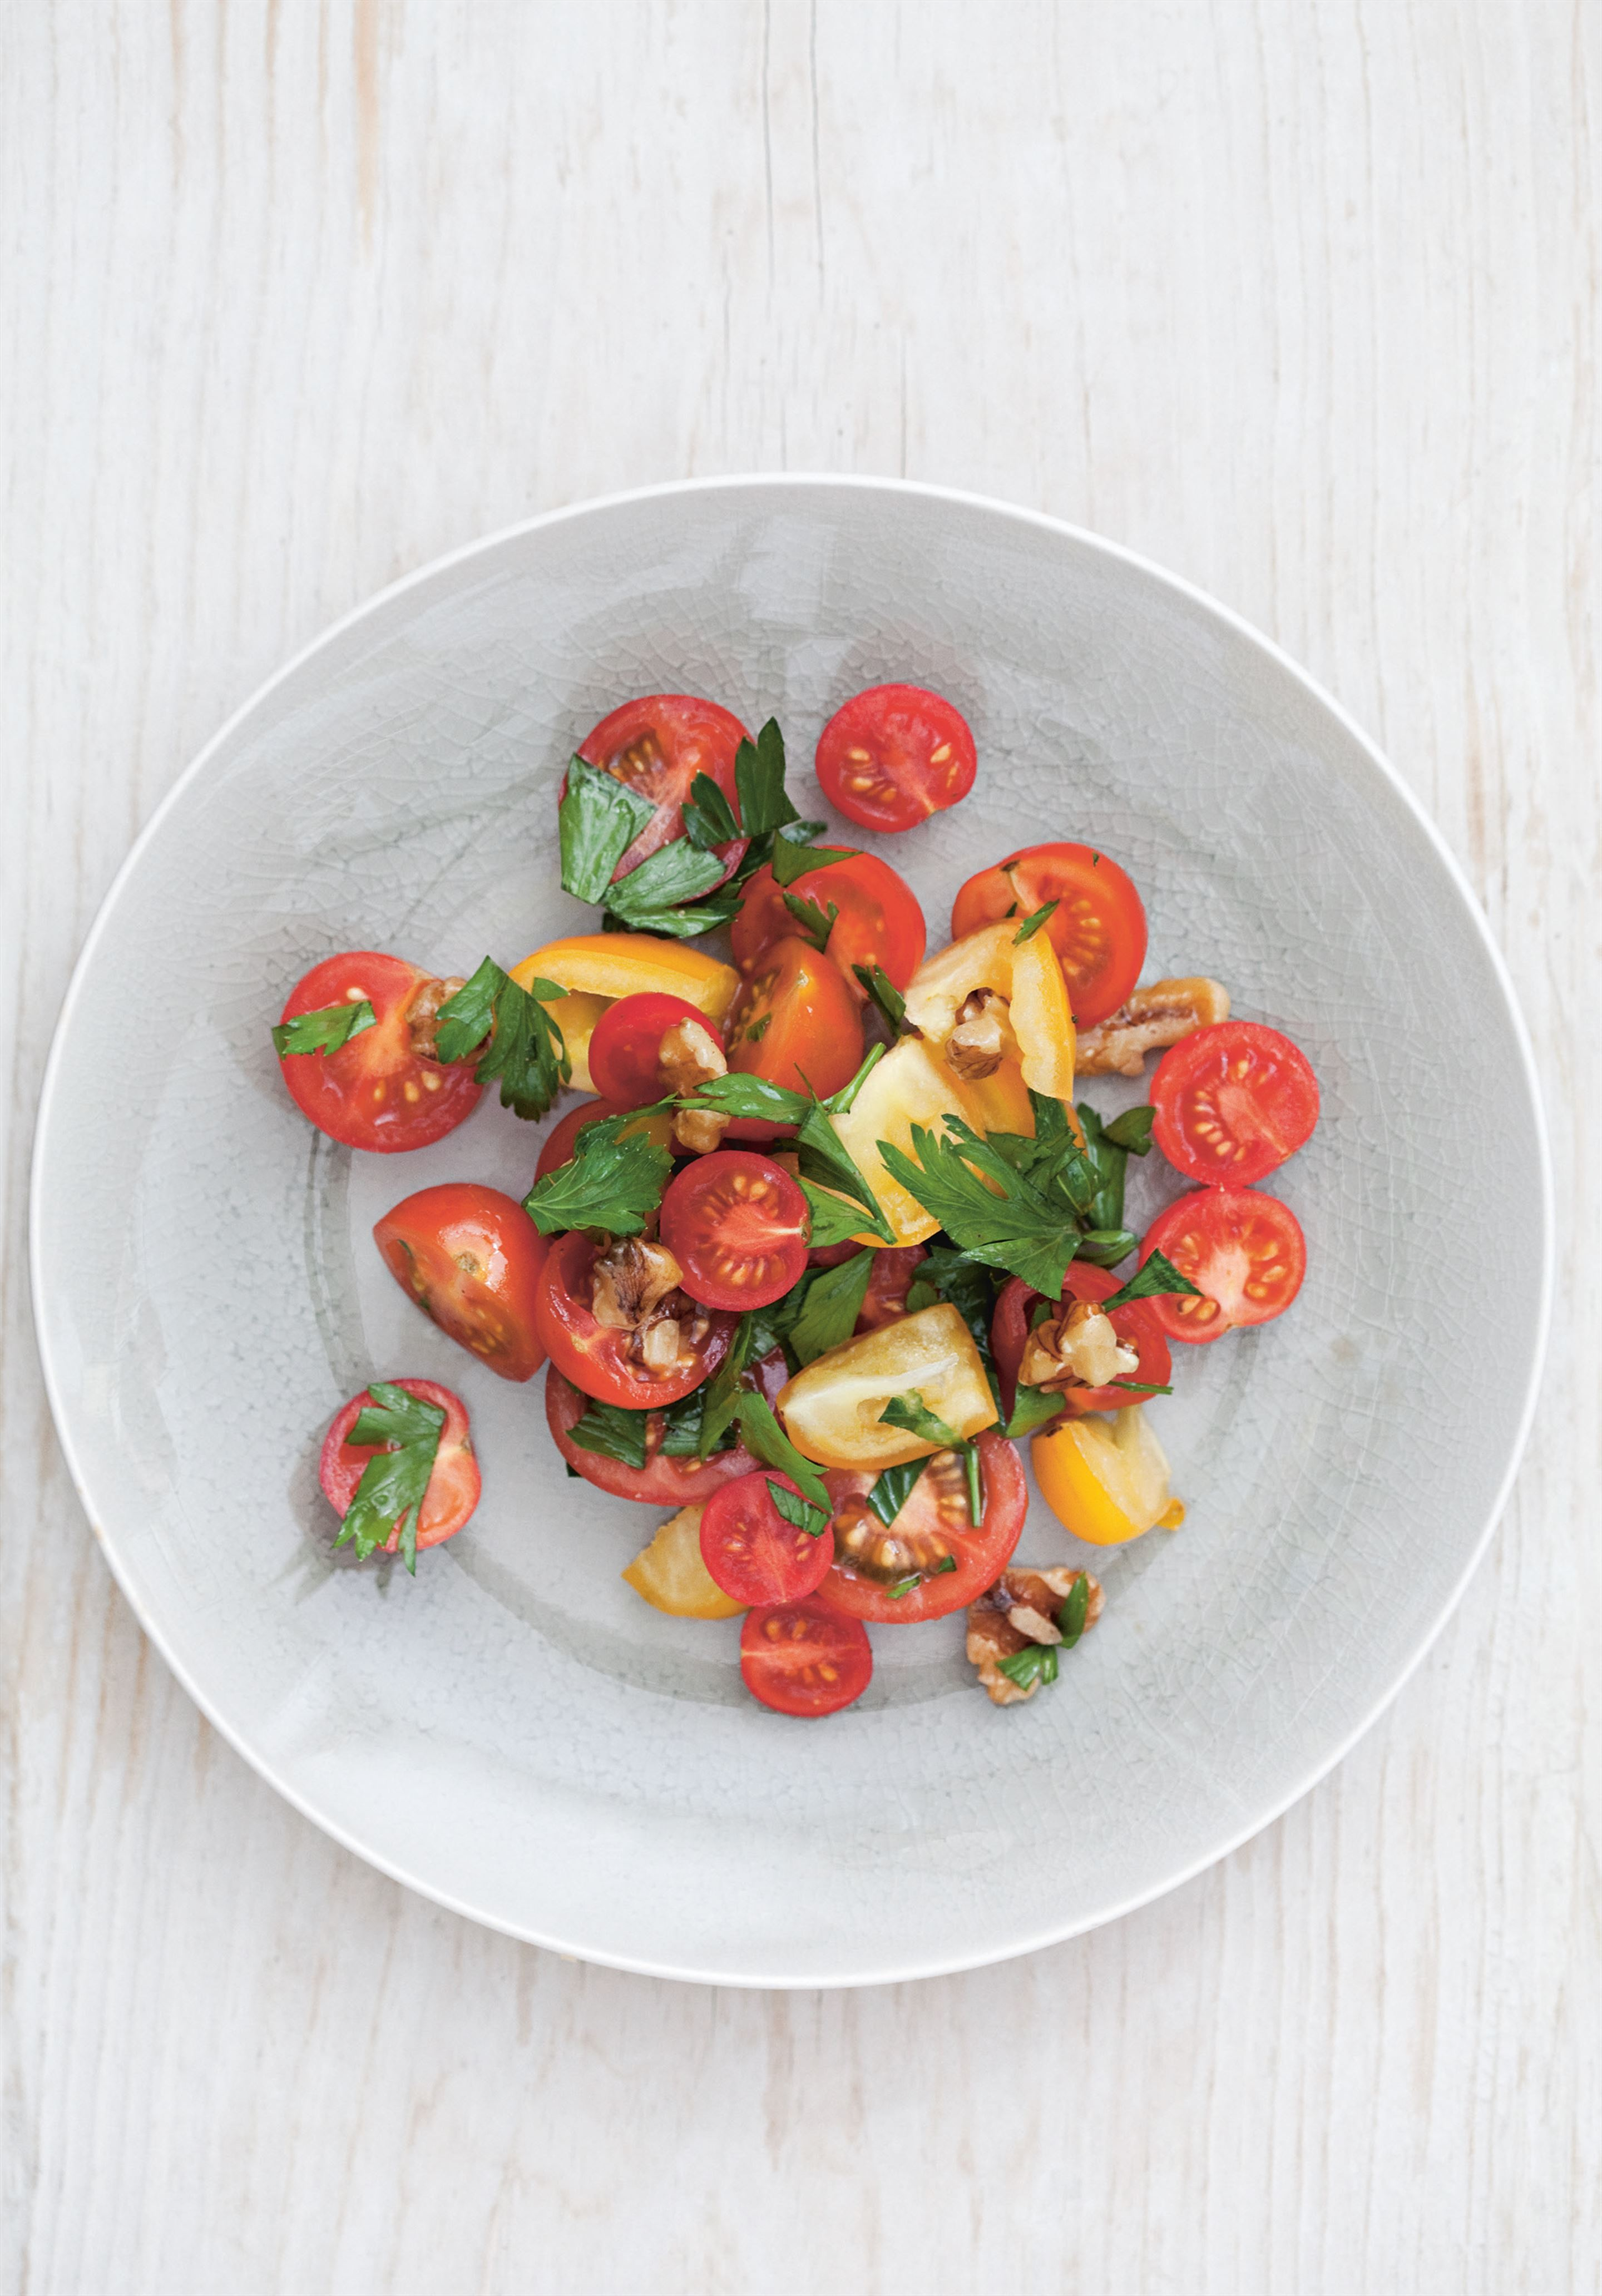 Tomato, walnut and pomegranate molasses salad